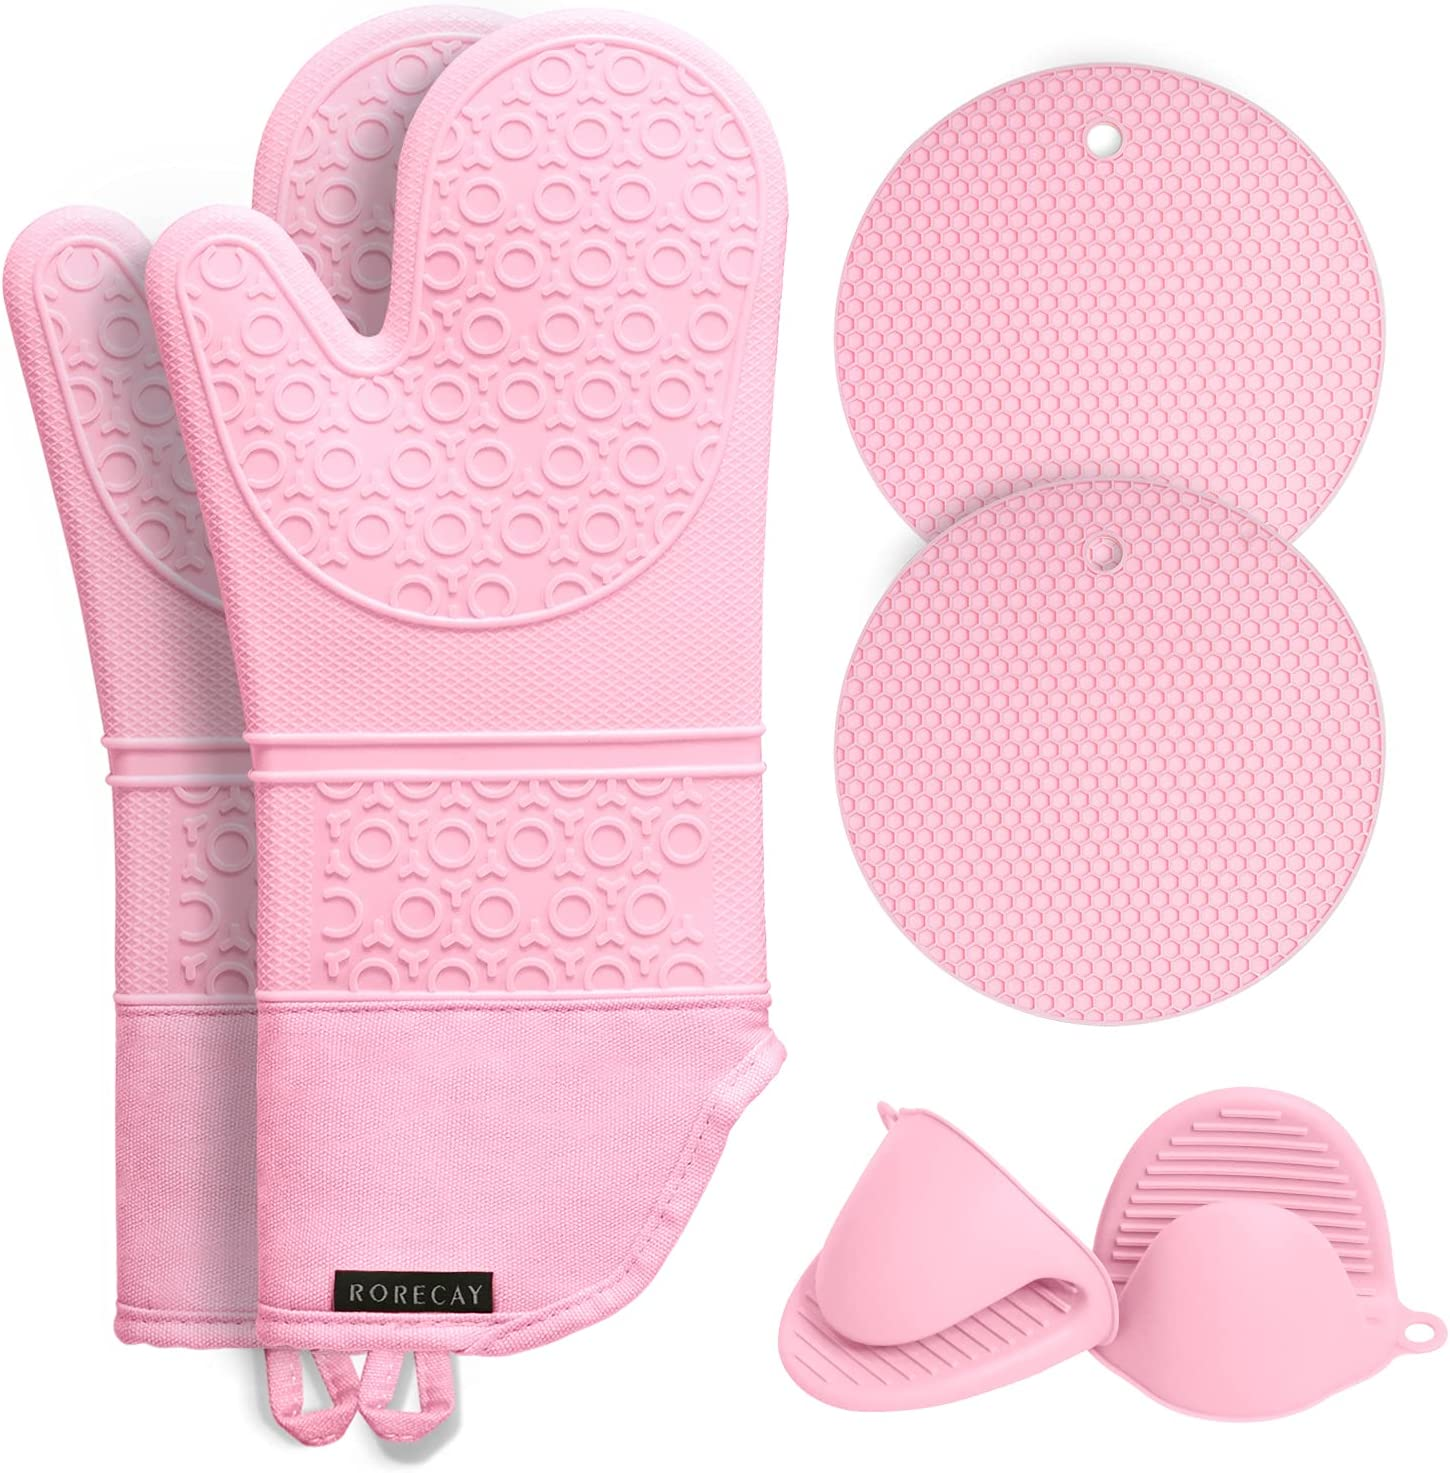 Rorecay Extra Long Oven Mitts and Pot Holders Sets: Heat Resistant Silicone Oven Mittens with Mini Oven Gloves and Hot Pads Potholders for Kitchen Baking Cooking, Quilted Liner, Pack of 6 (Pink)